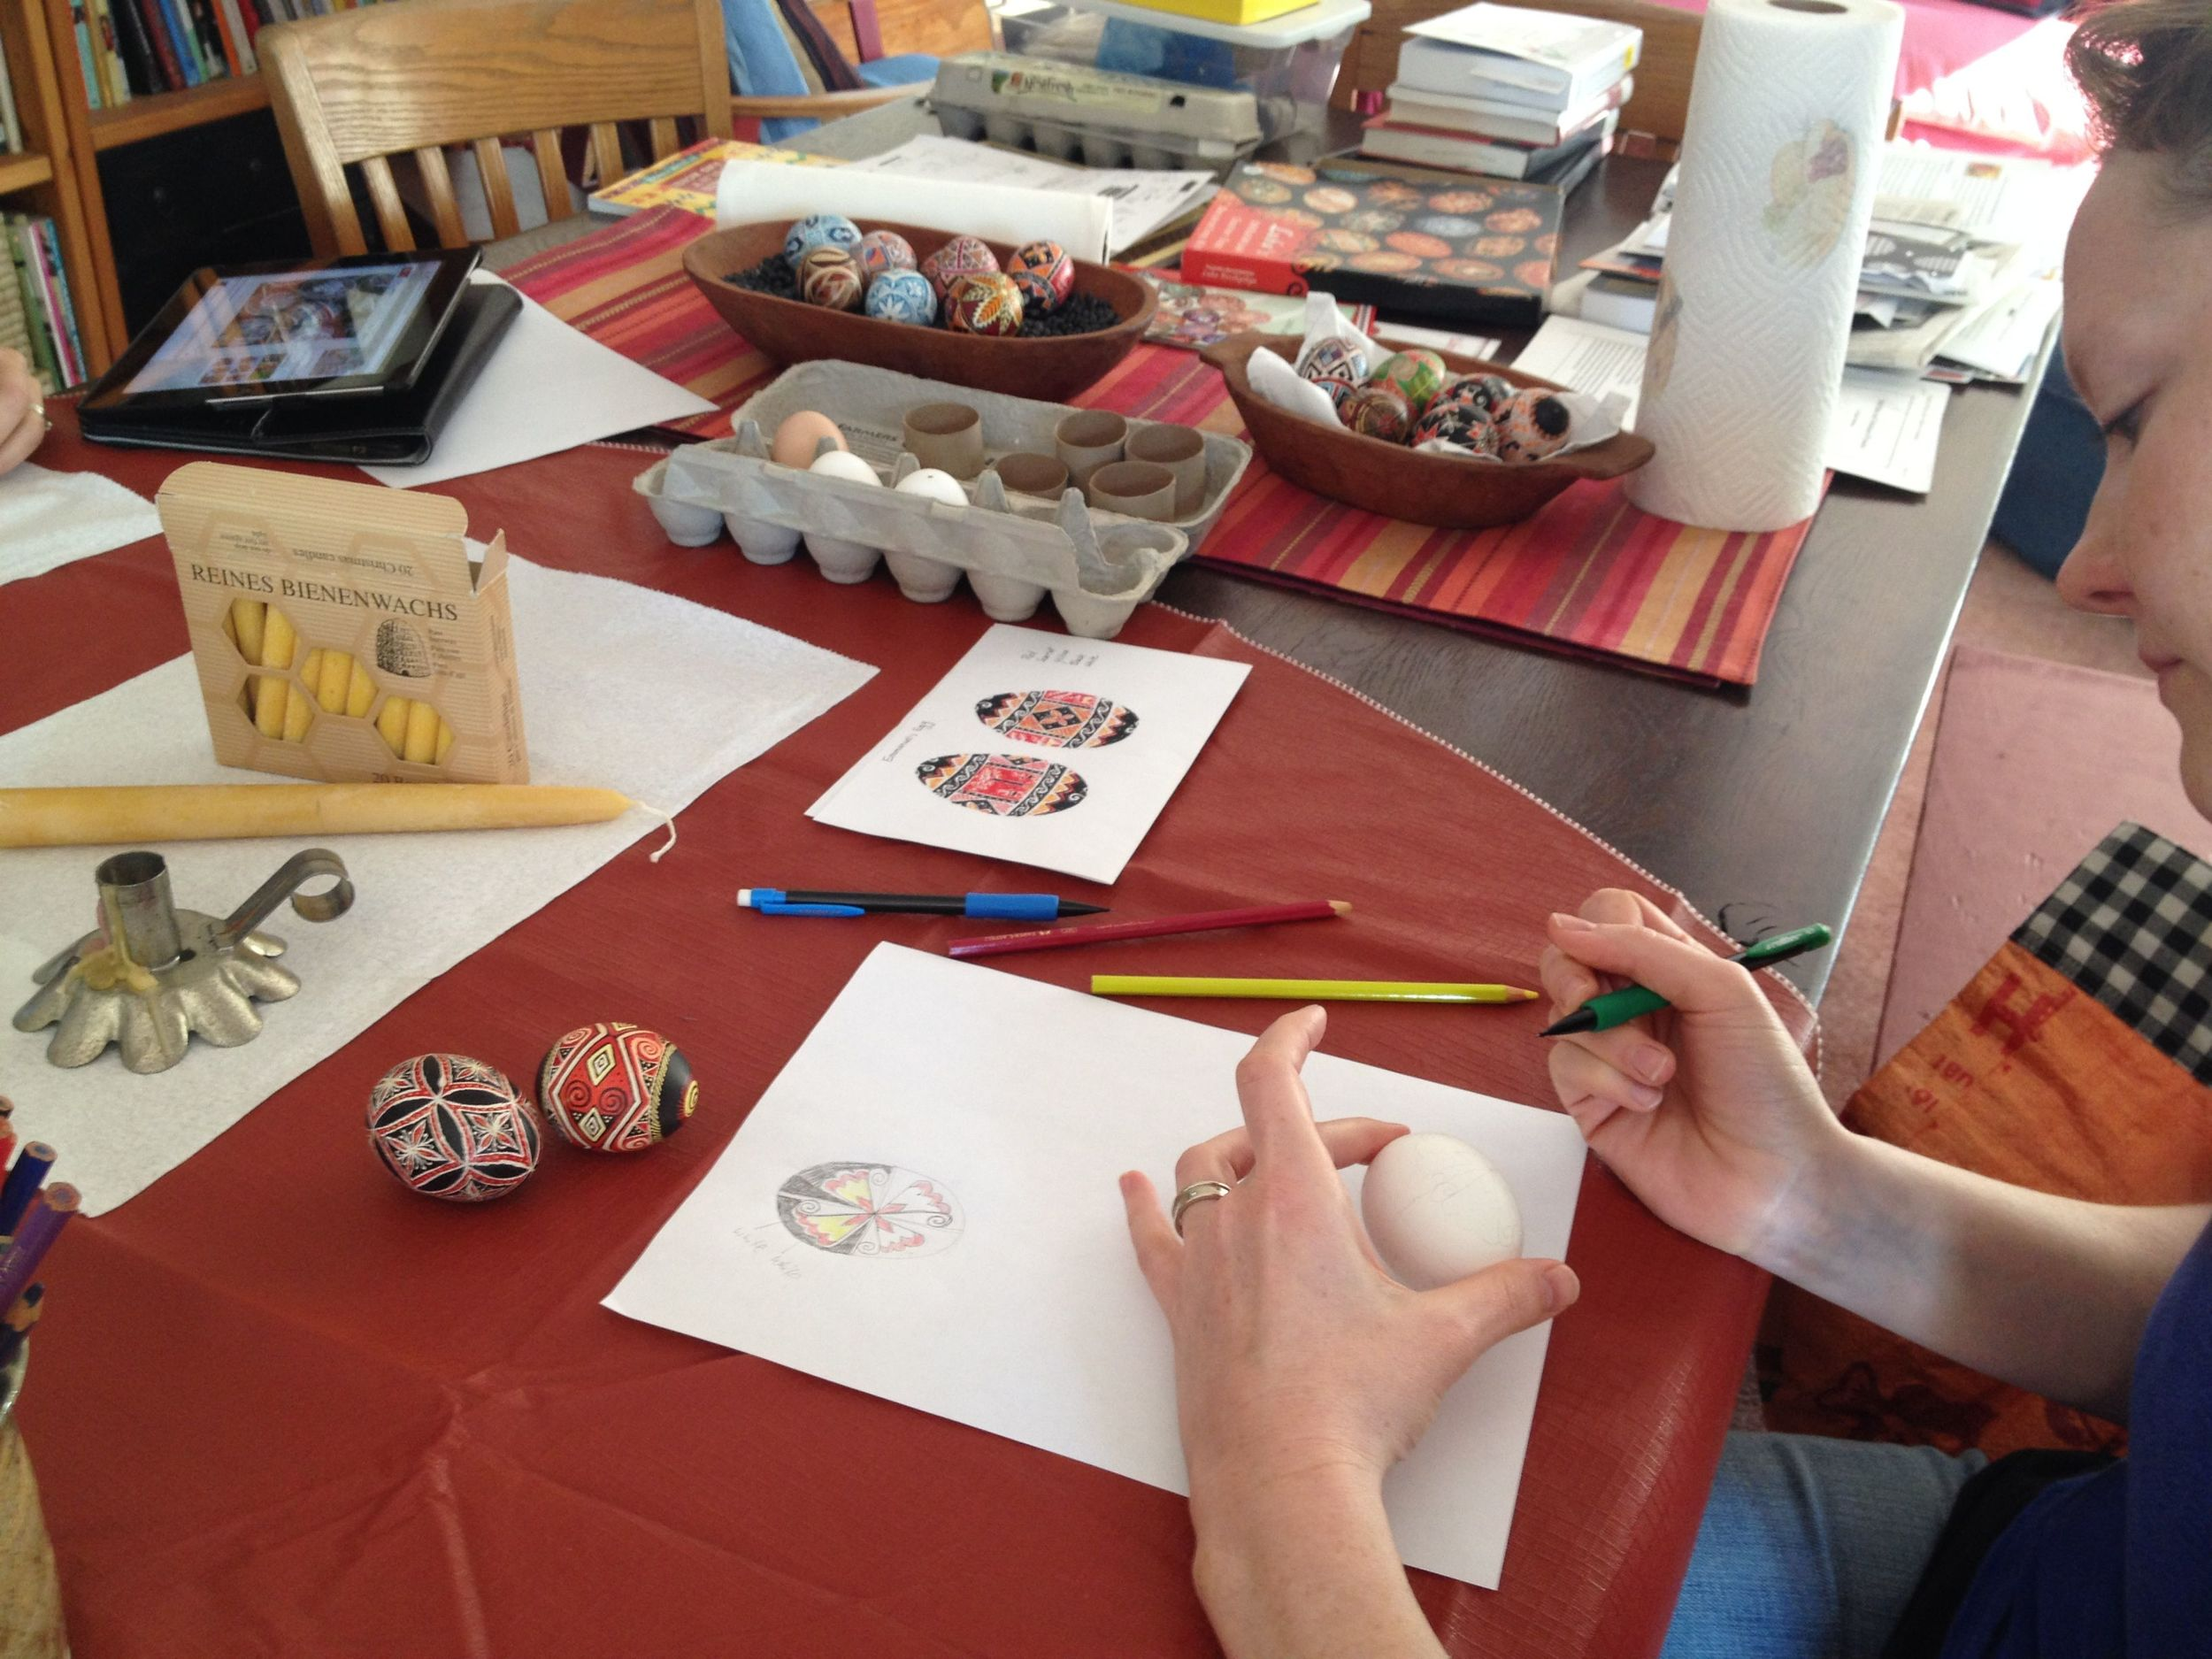 Sketching designs onto the eggs